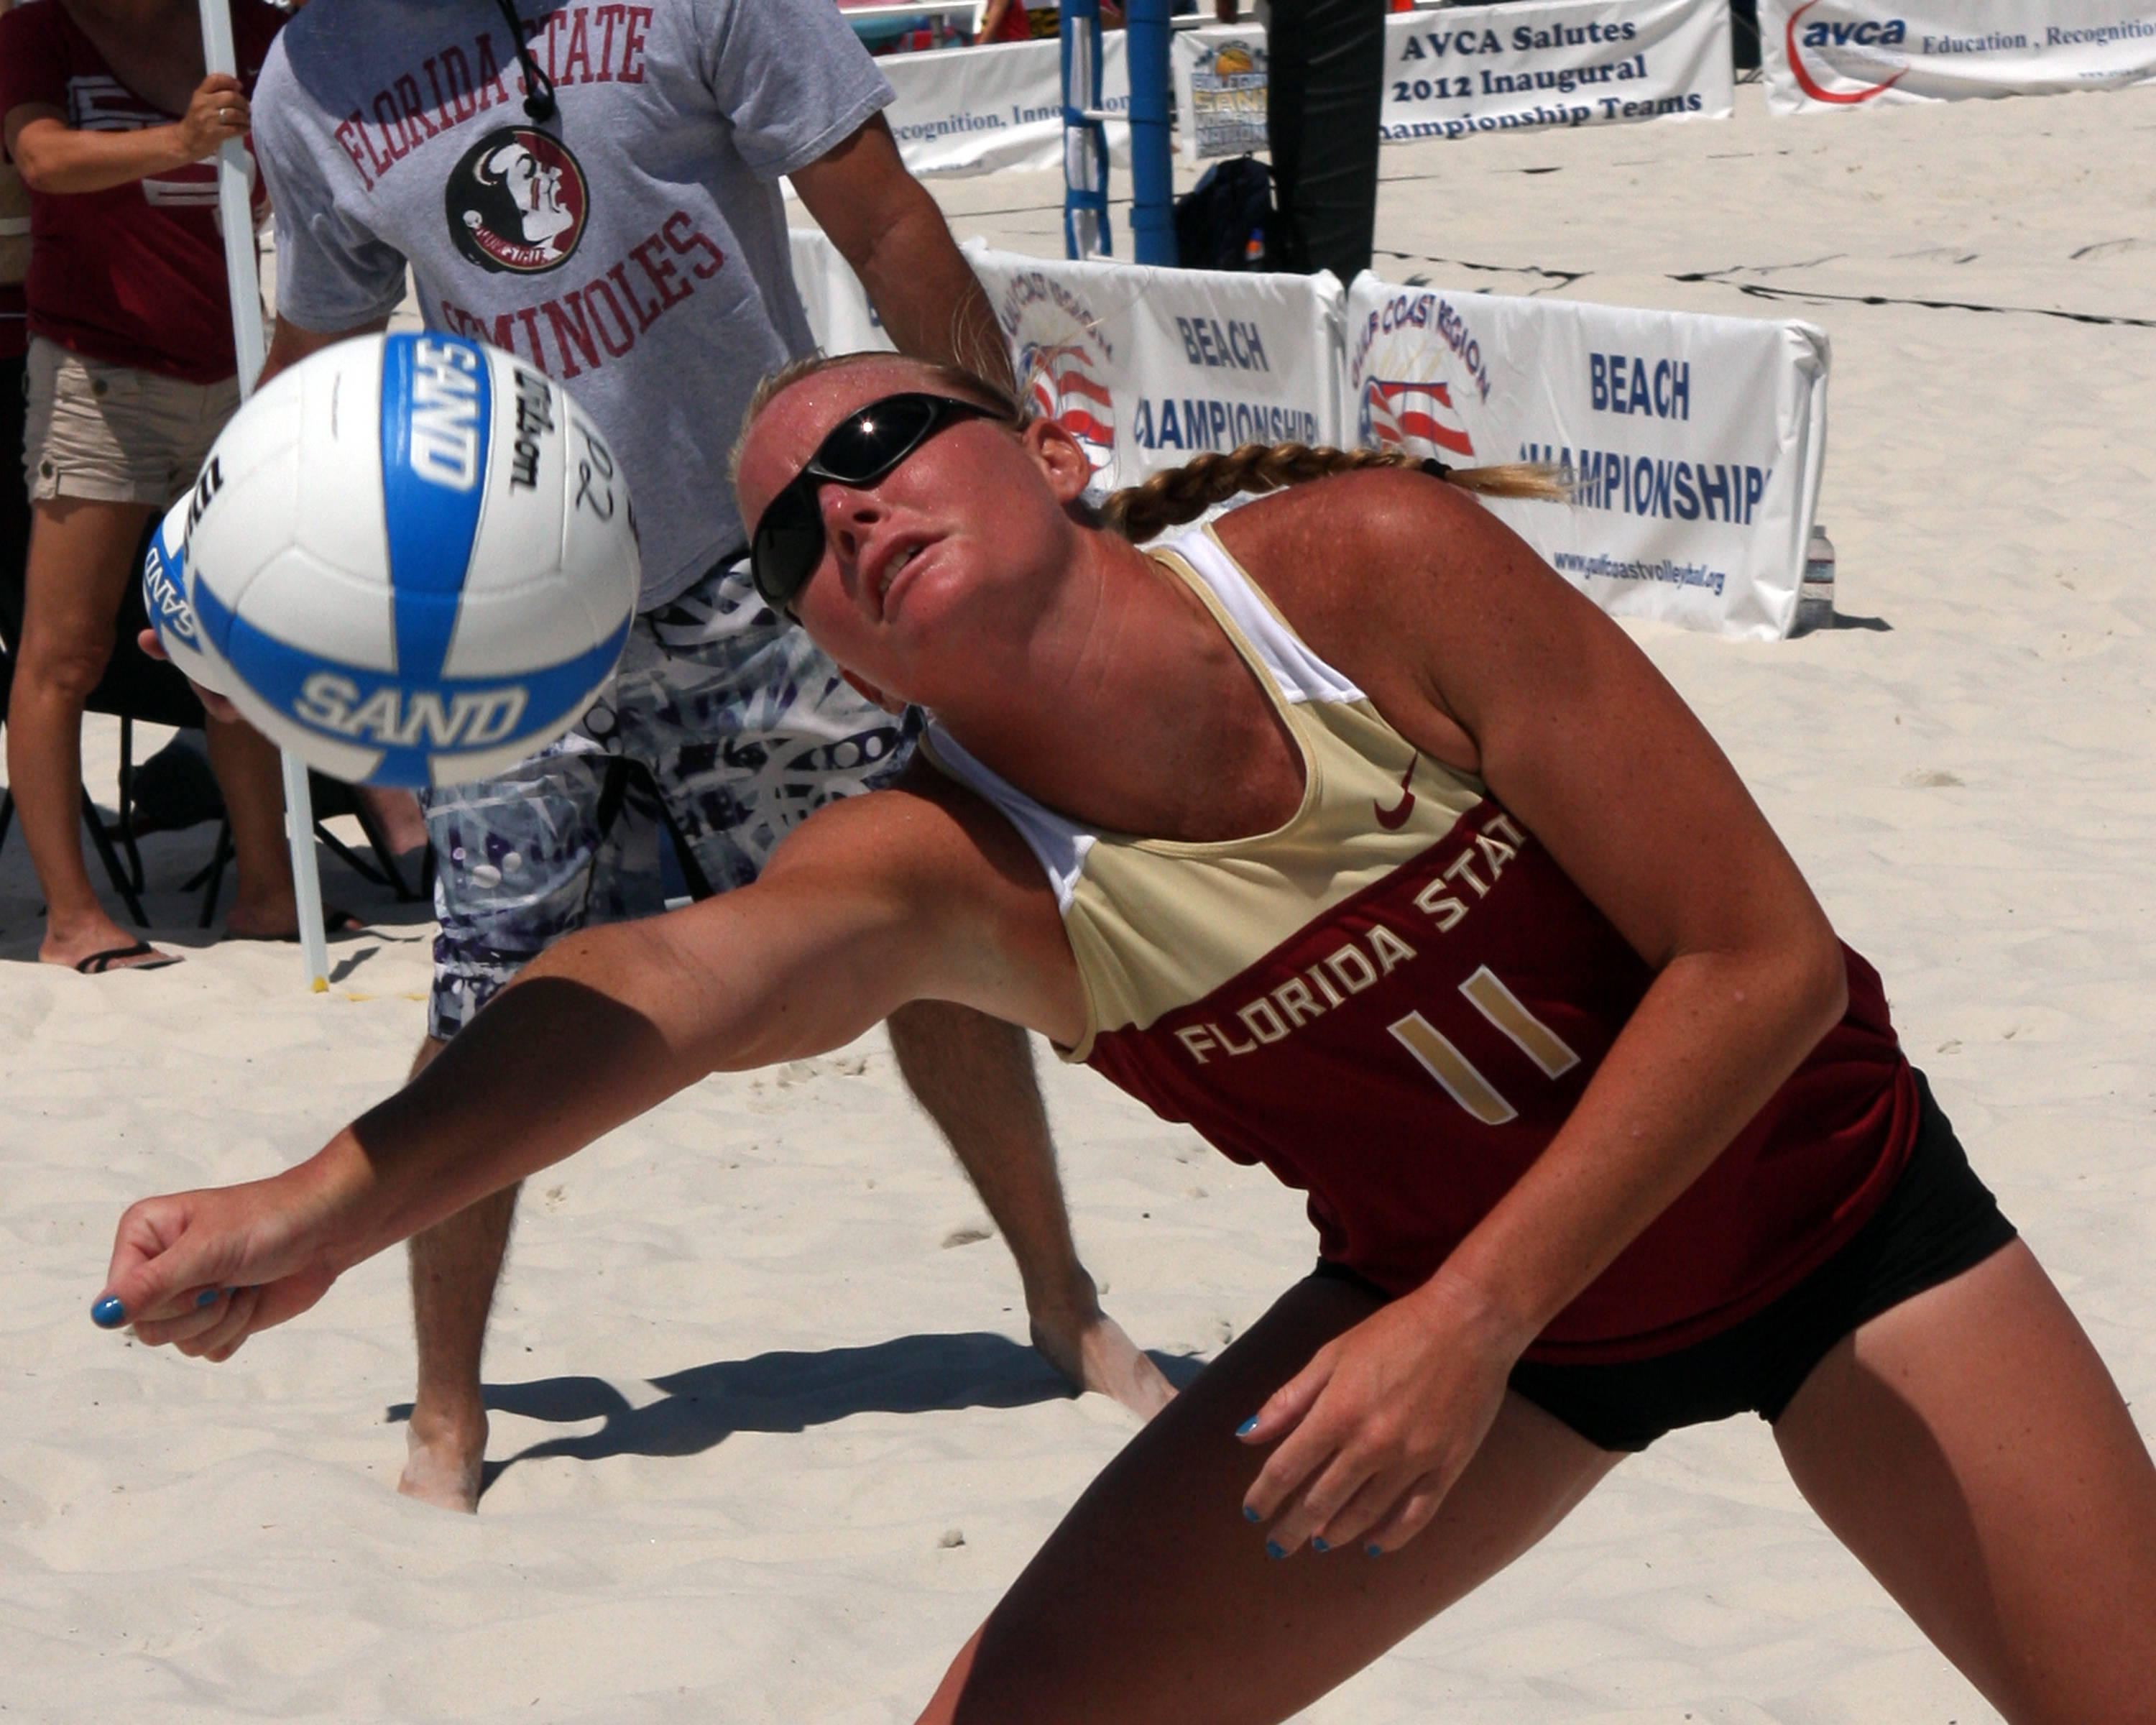 Caitlin Haworth, SAND VOLLEYBALL COLLEGIATE CHAMPIONSHIPS,  04/28/2012